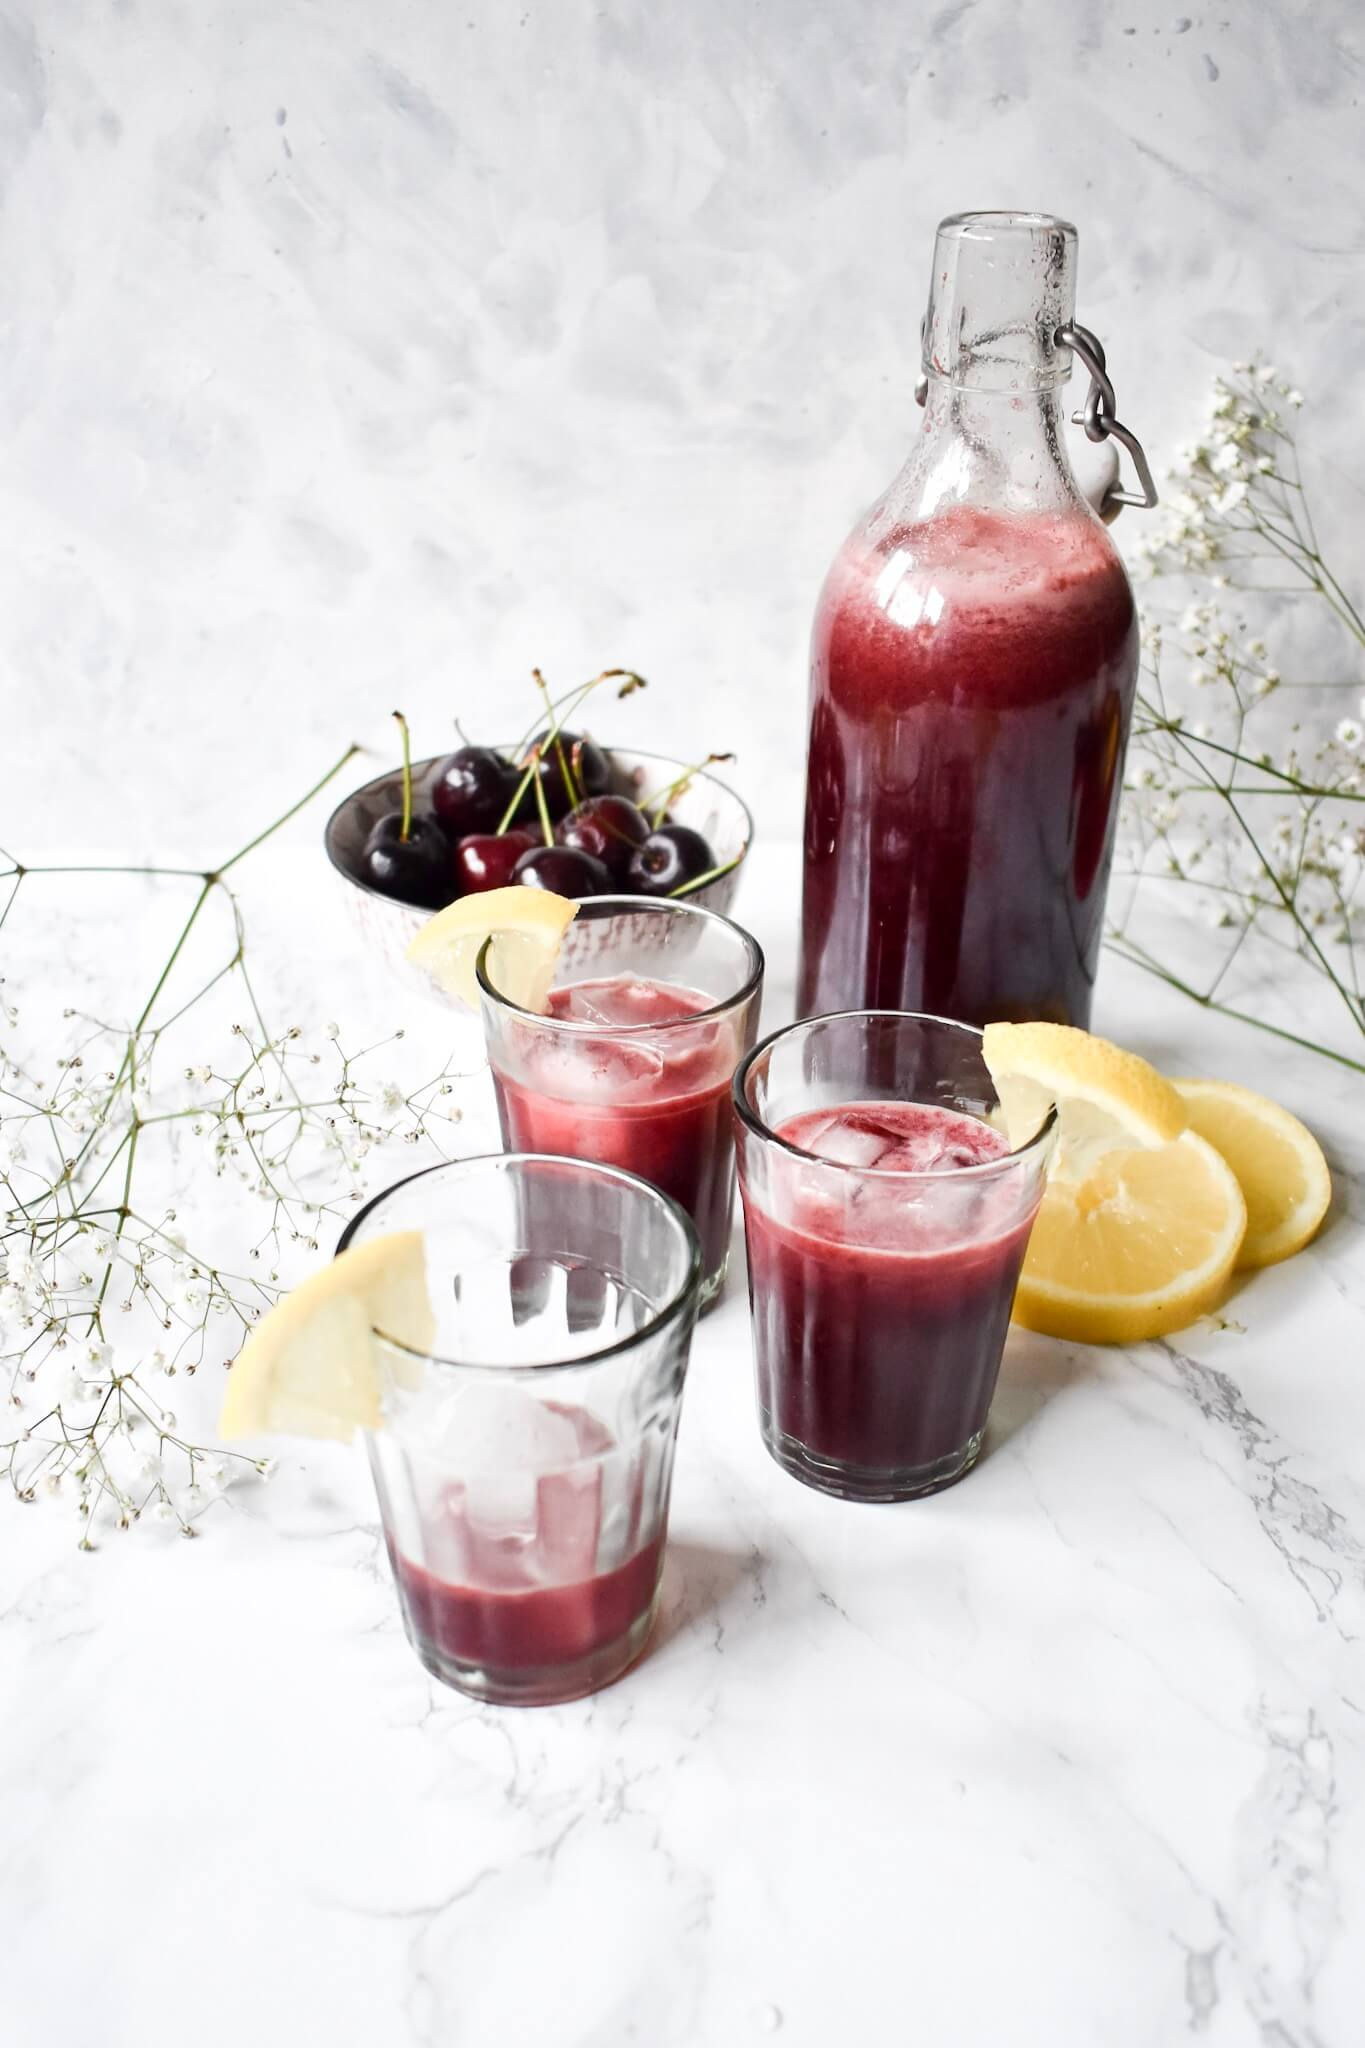 a photograph of 3 glasses of cherry lemonade and a glass bottle